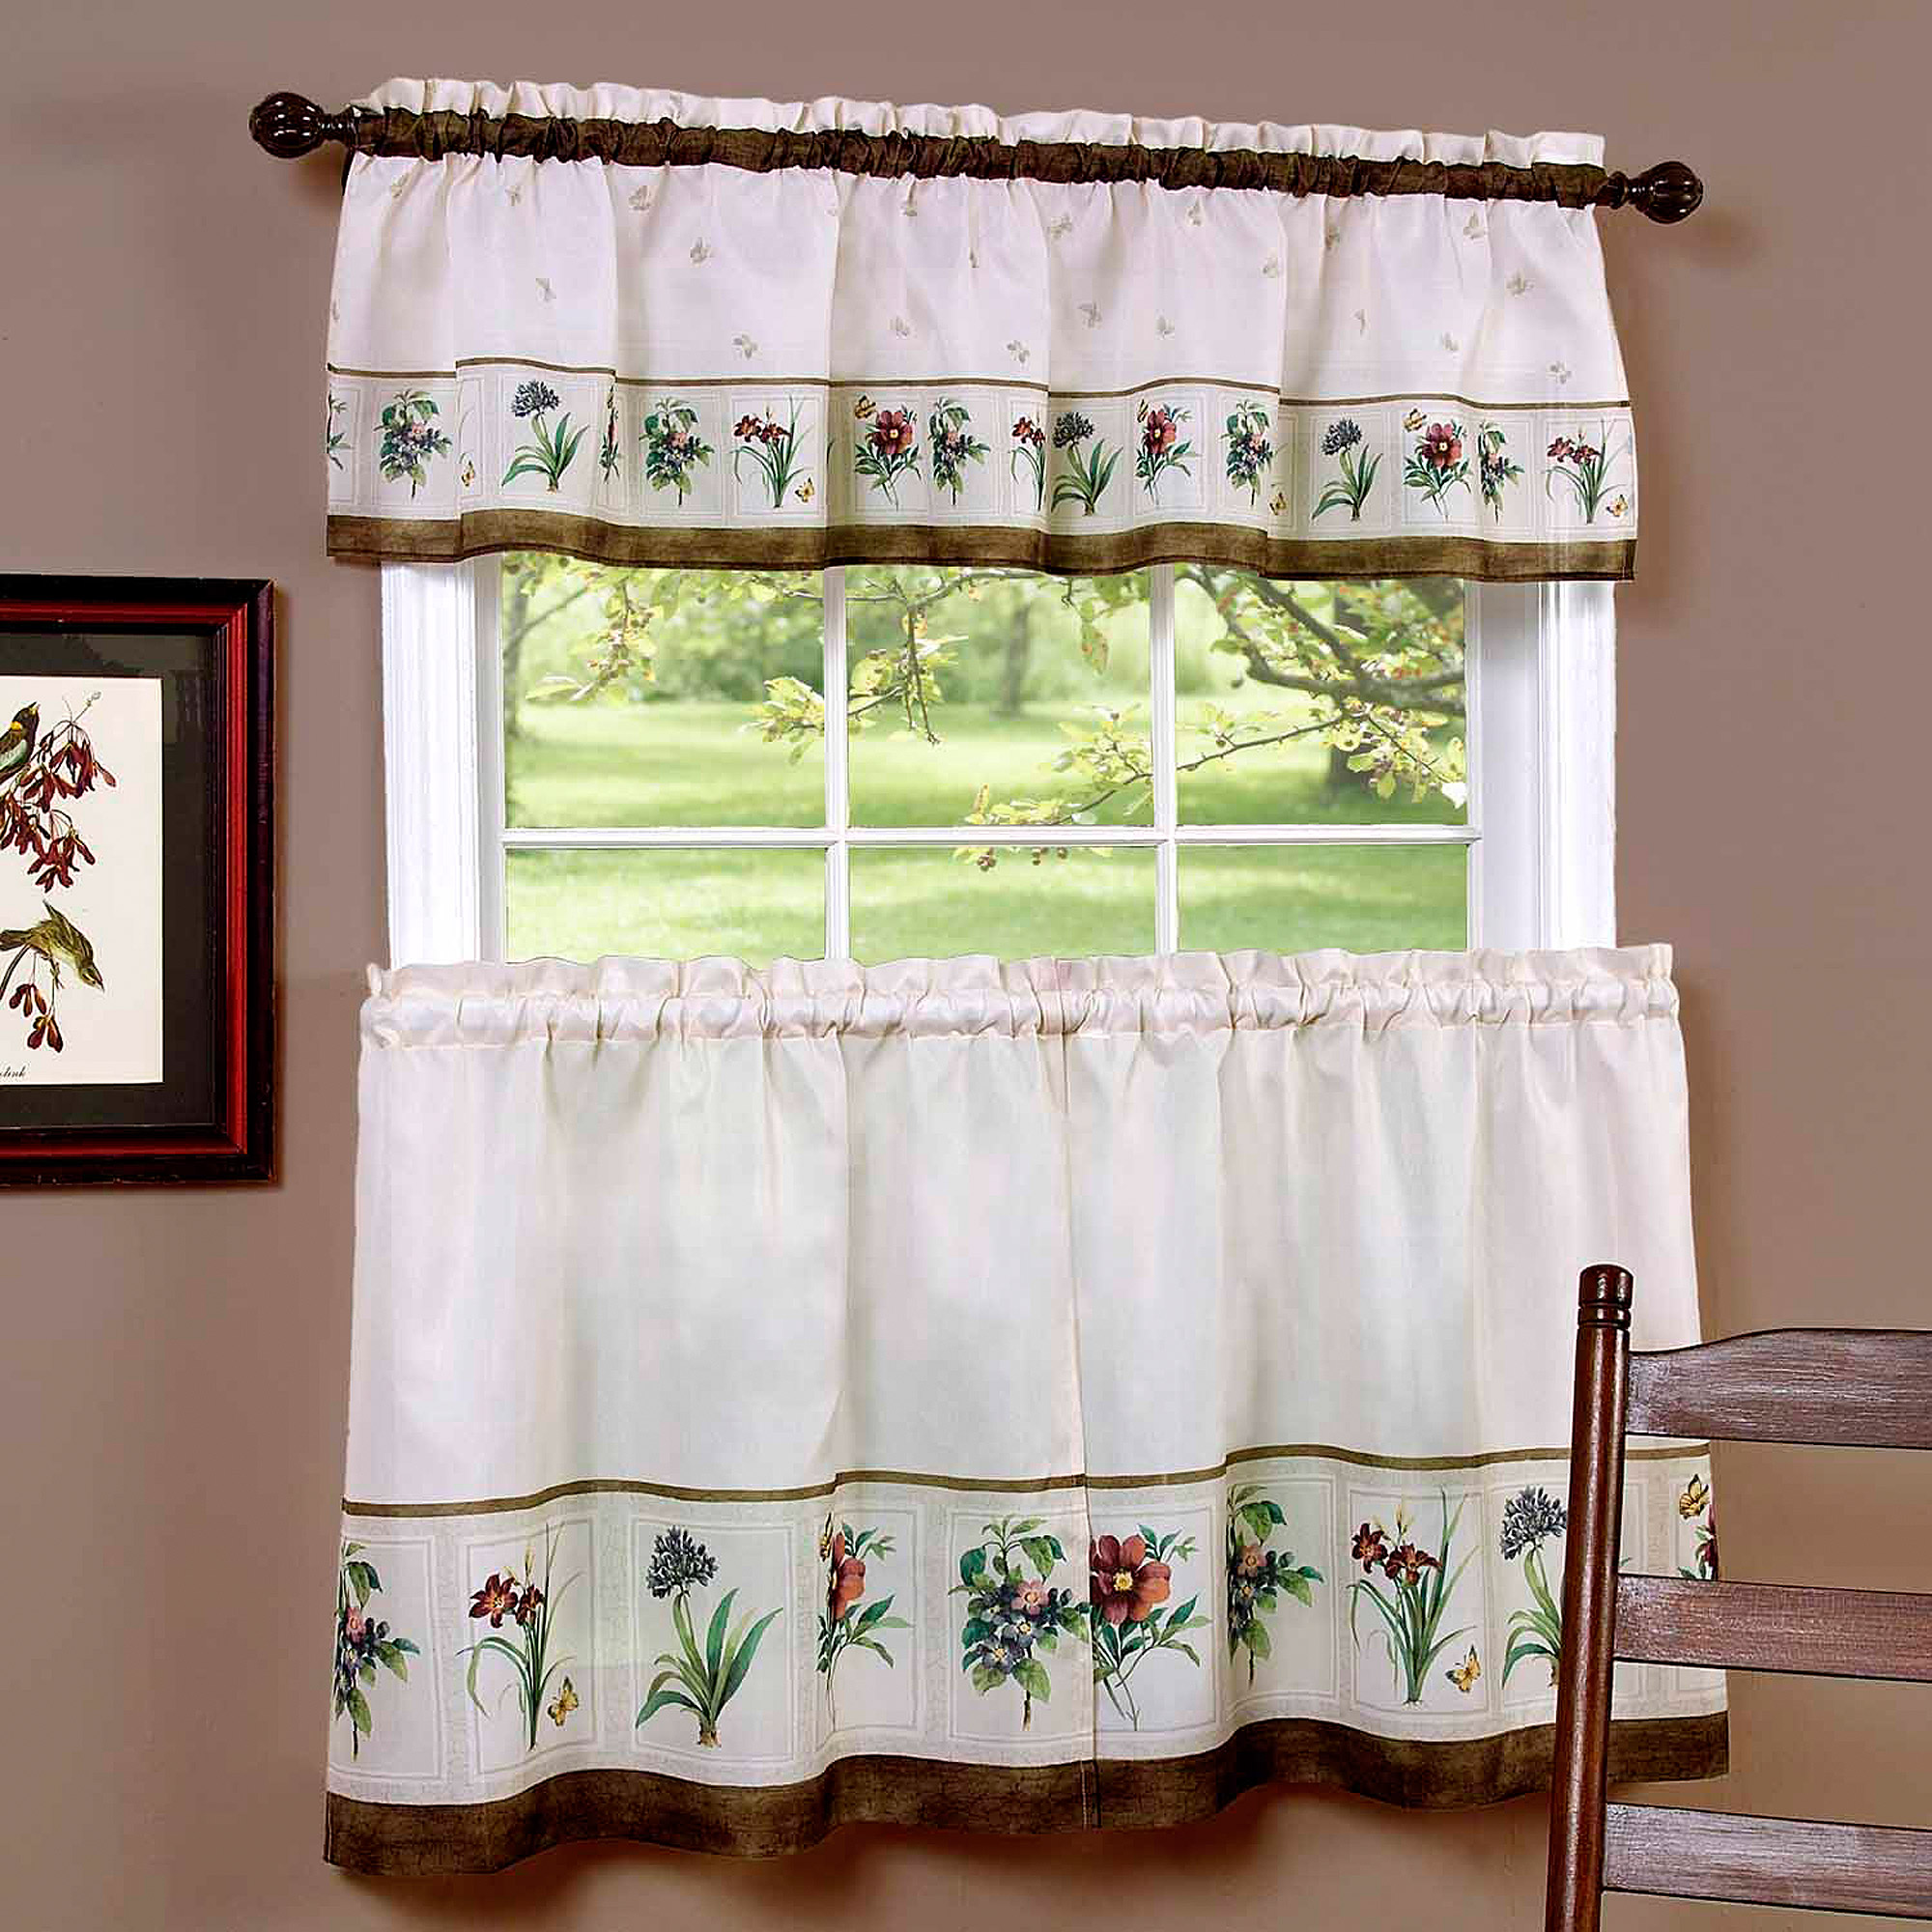 Kitchen cafe curtain patterns - Pioneer Woman Kitchen Curtain And Valance 3pc Set Country Garden Walmart Com